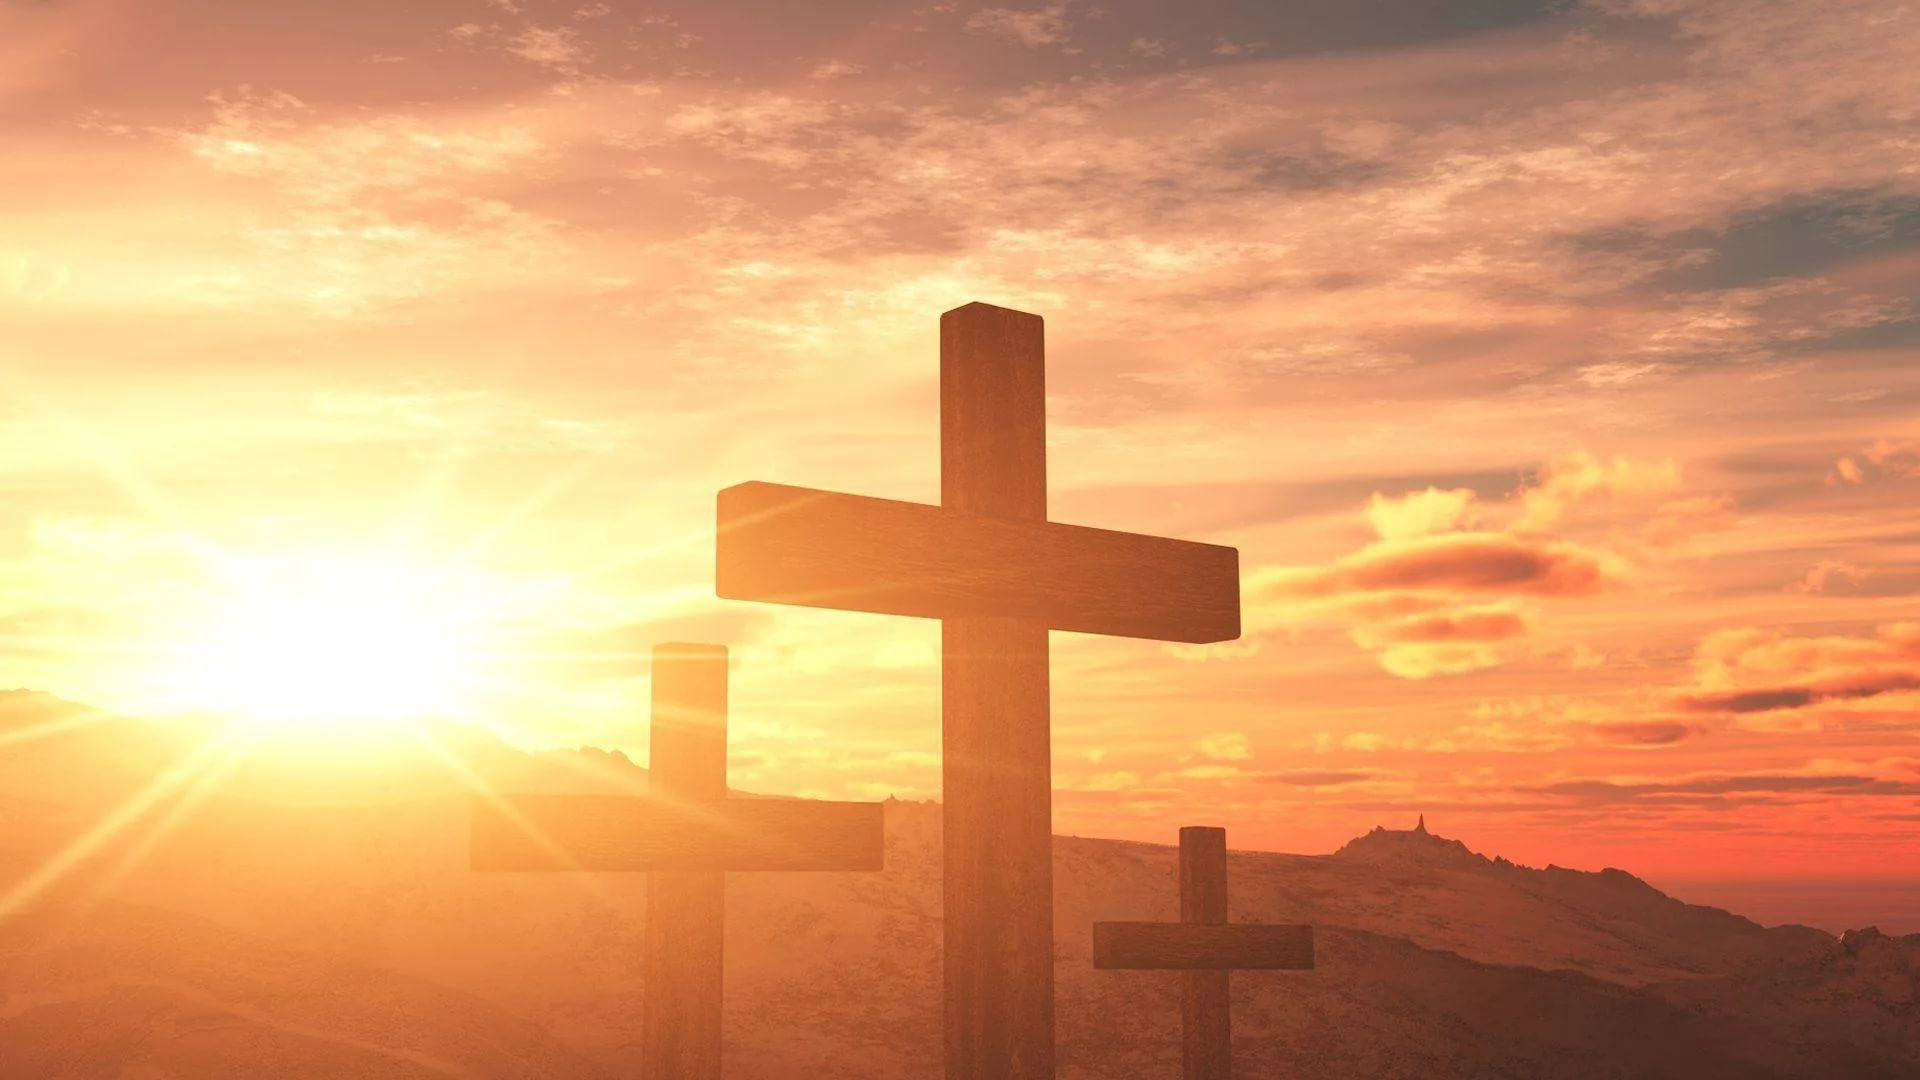 Religious Easter hd wallpaper 1080p for pc